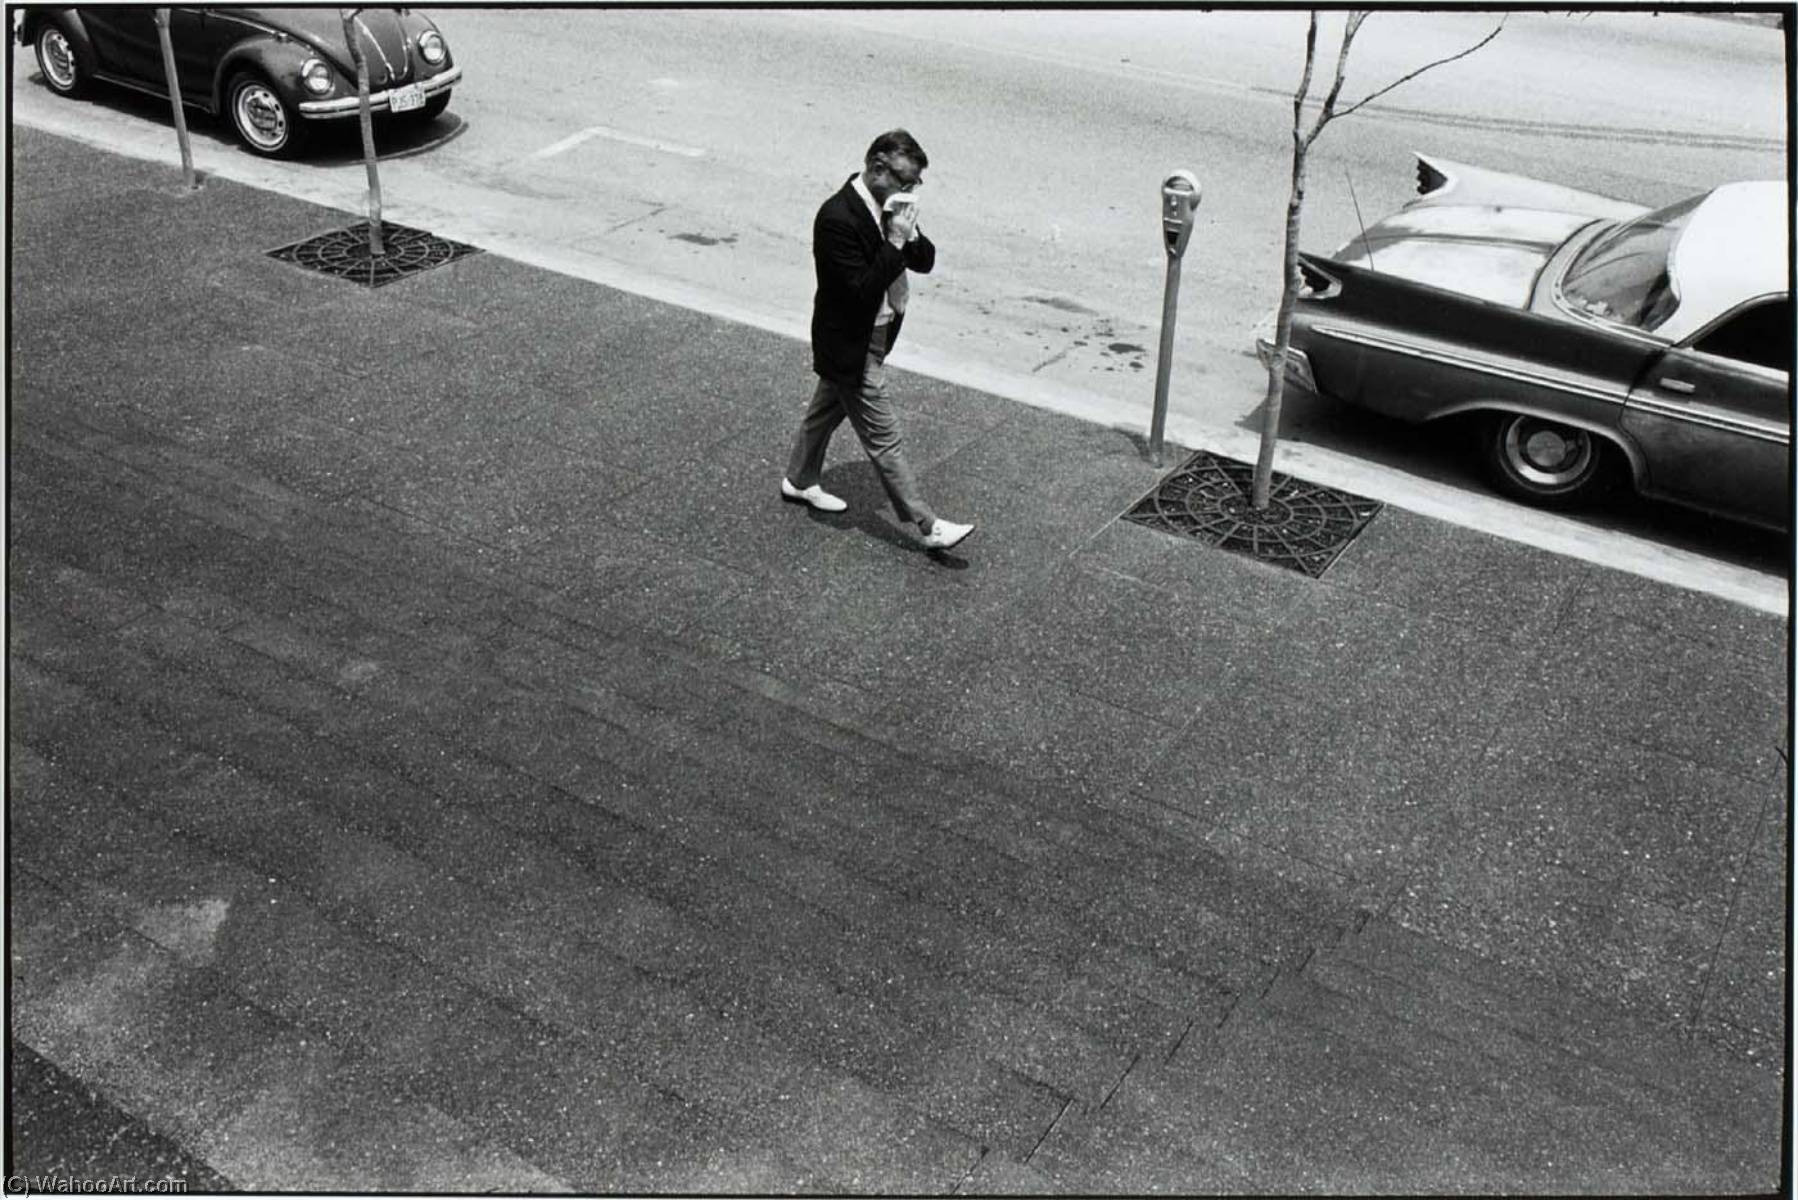 Untitled (Man and Parking Meter), Print by Paul Hester